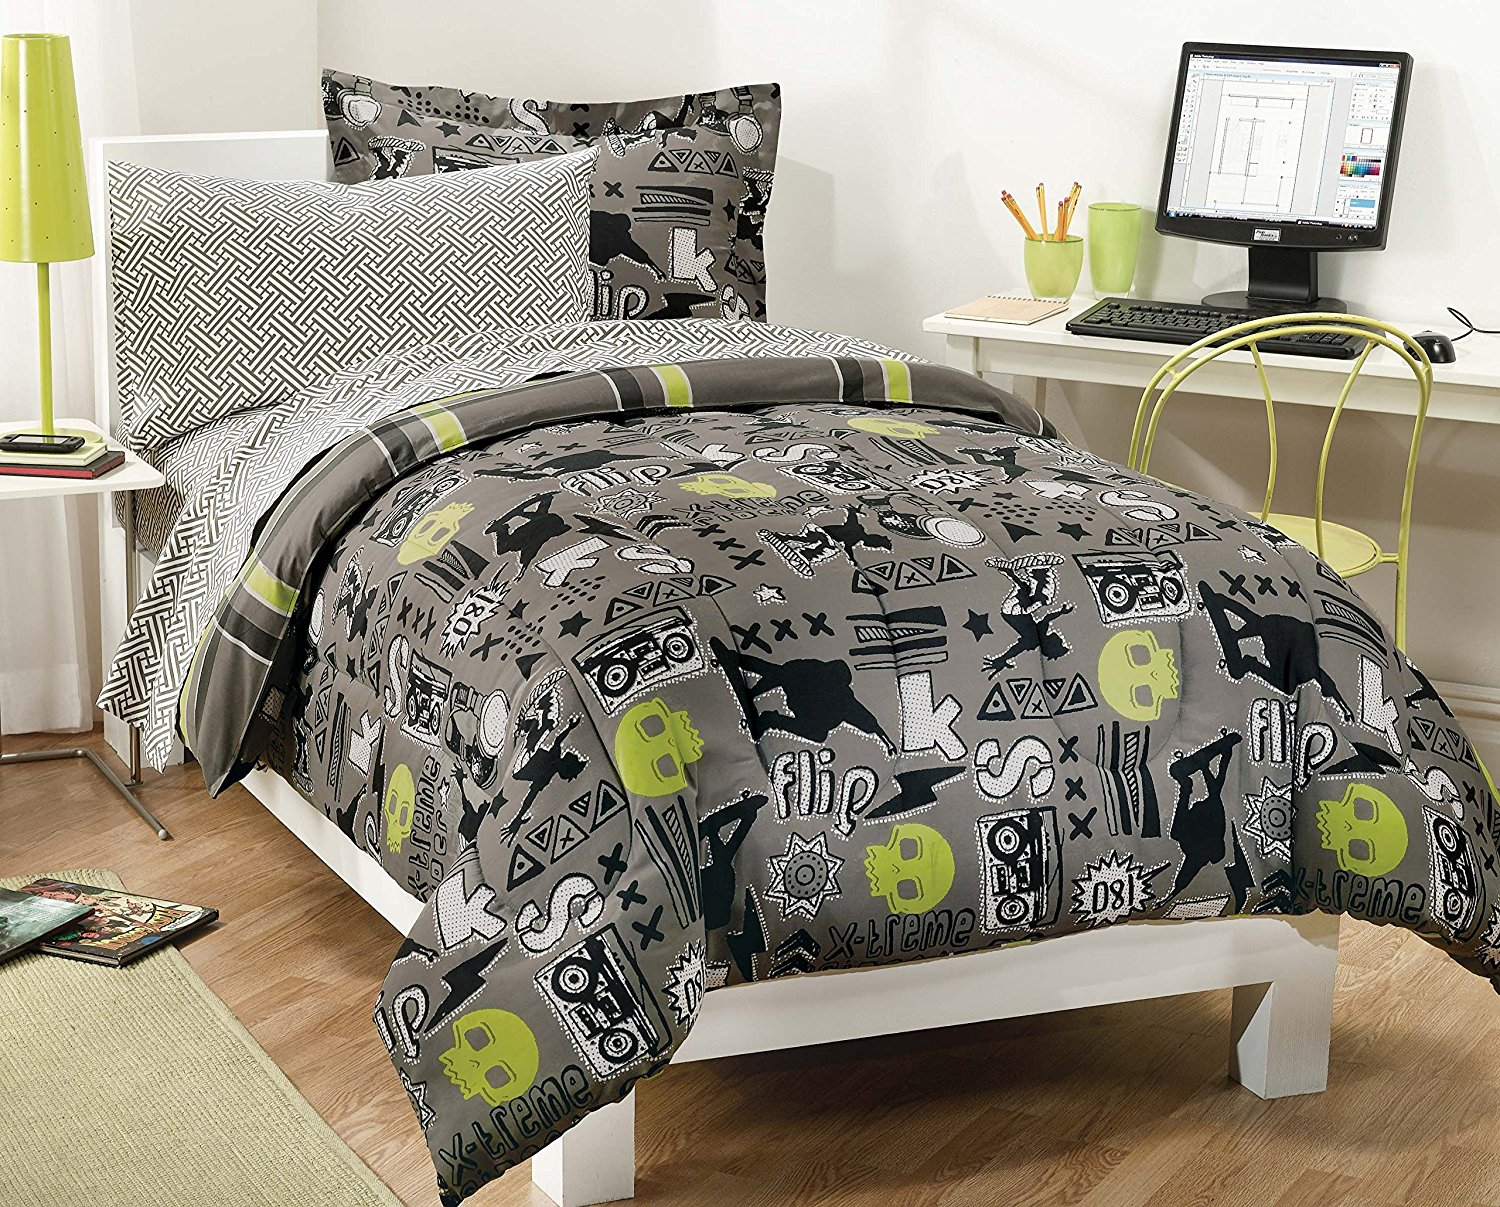 comforters boy aetherair comforter co bed sheet asli boys